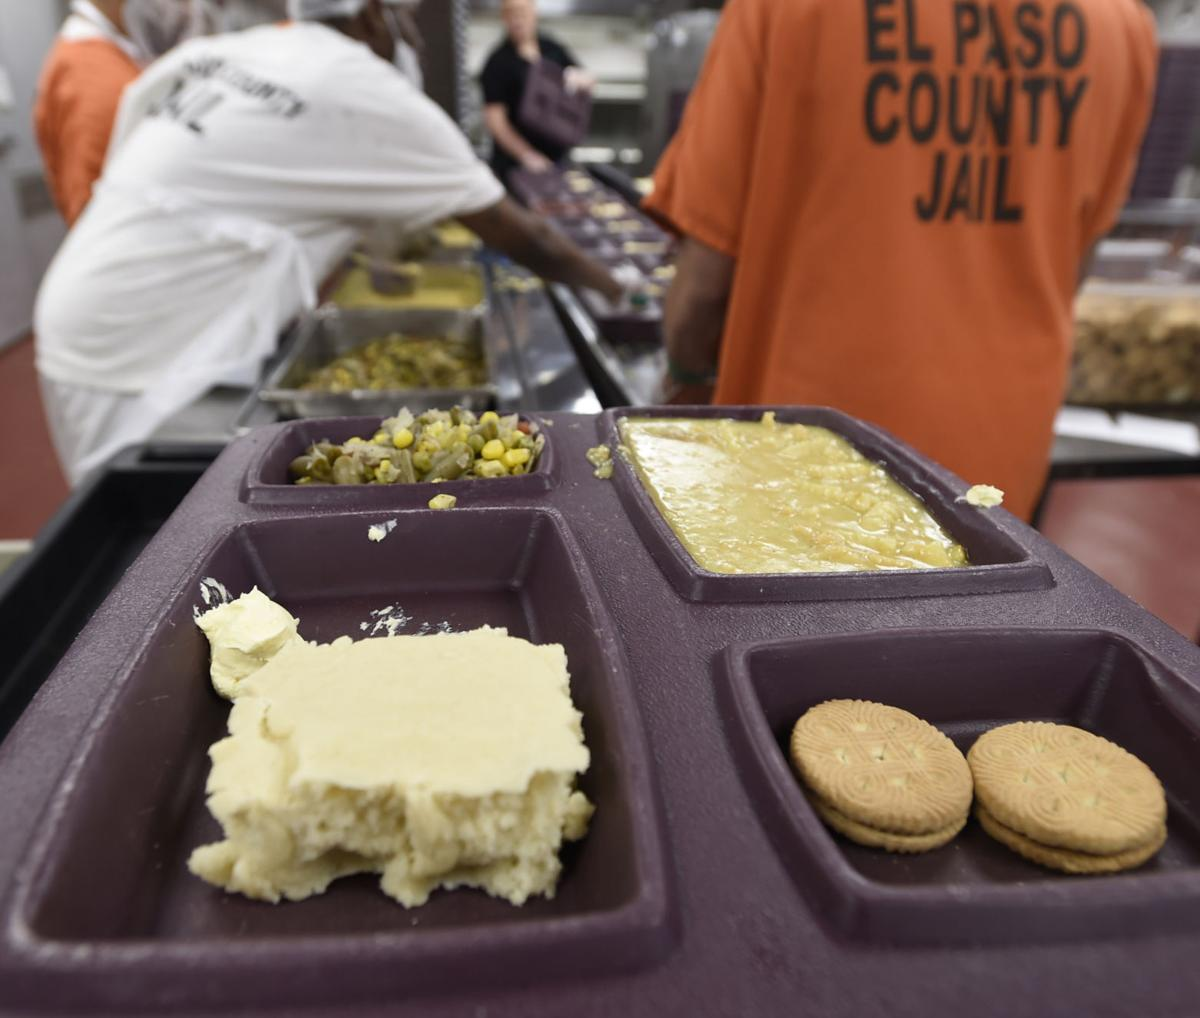 Attempted riot over food at El Paso County Jail preceded by rise in complaints, warnings from deputies